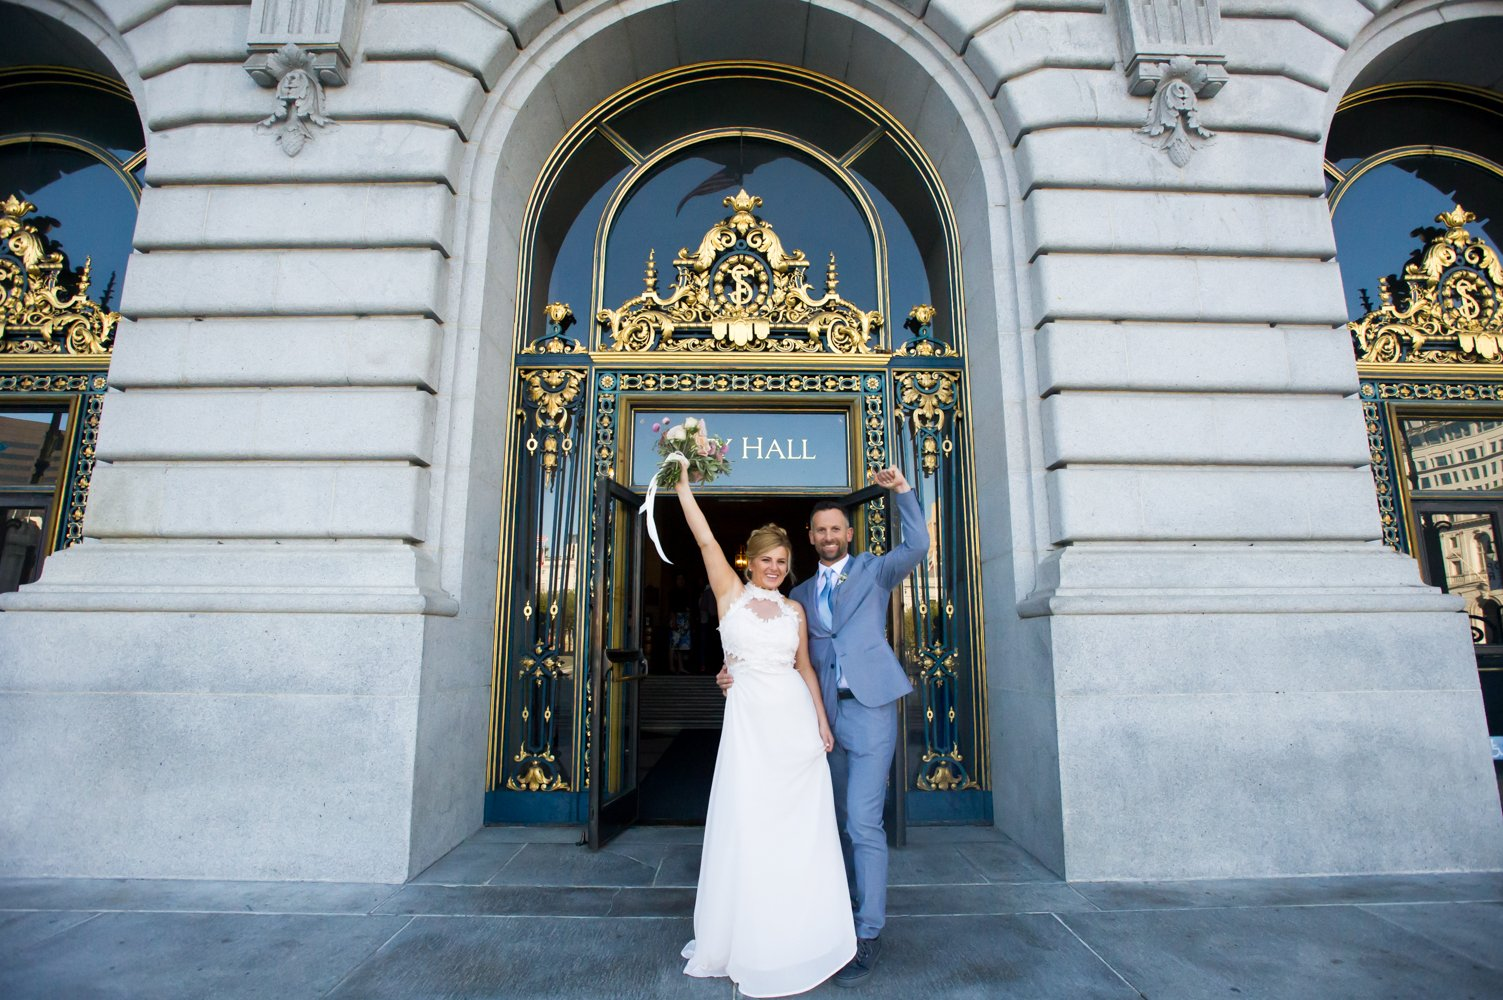 Chloe-Jackman-Photography-SF-City-Hall-Wedding-2017-2038